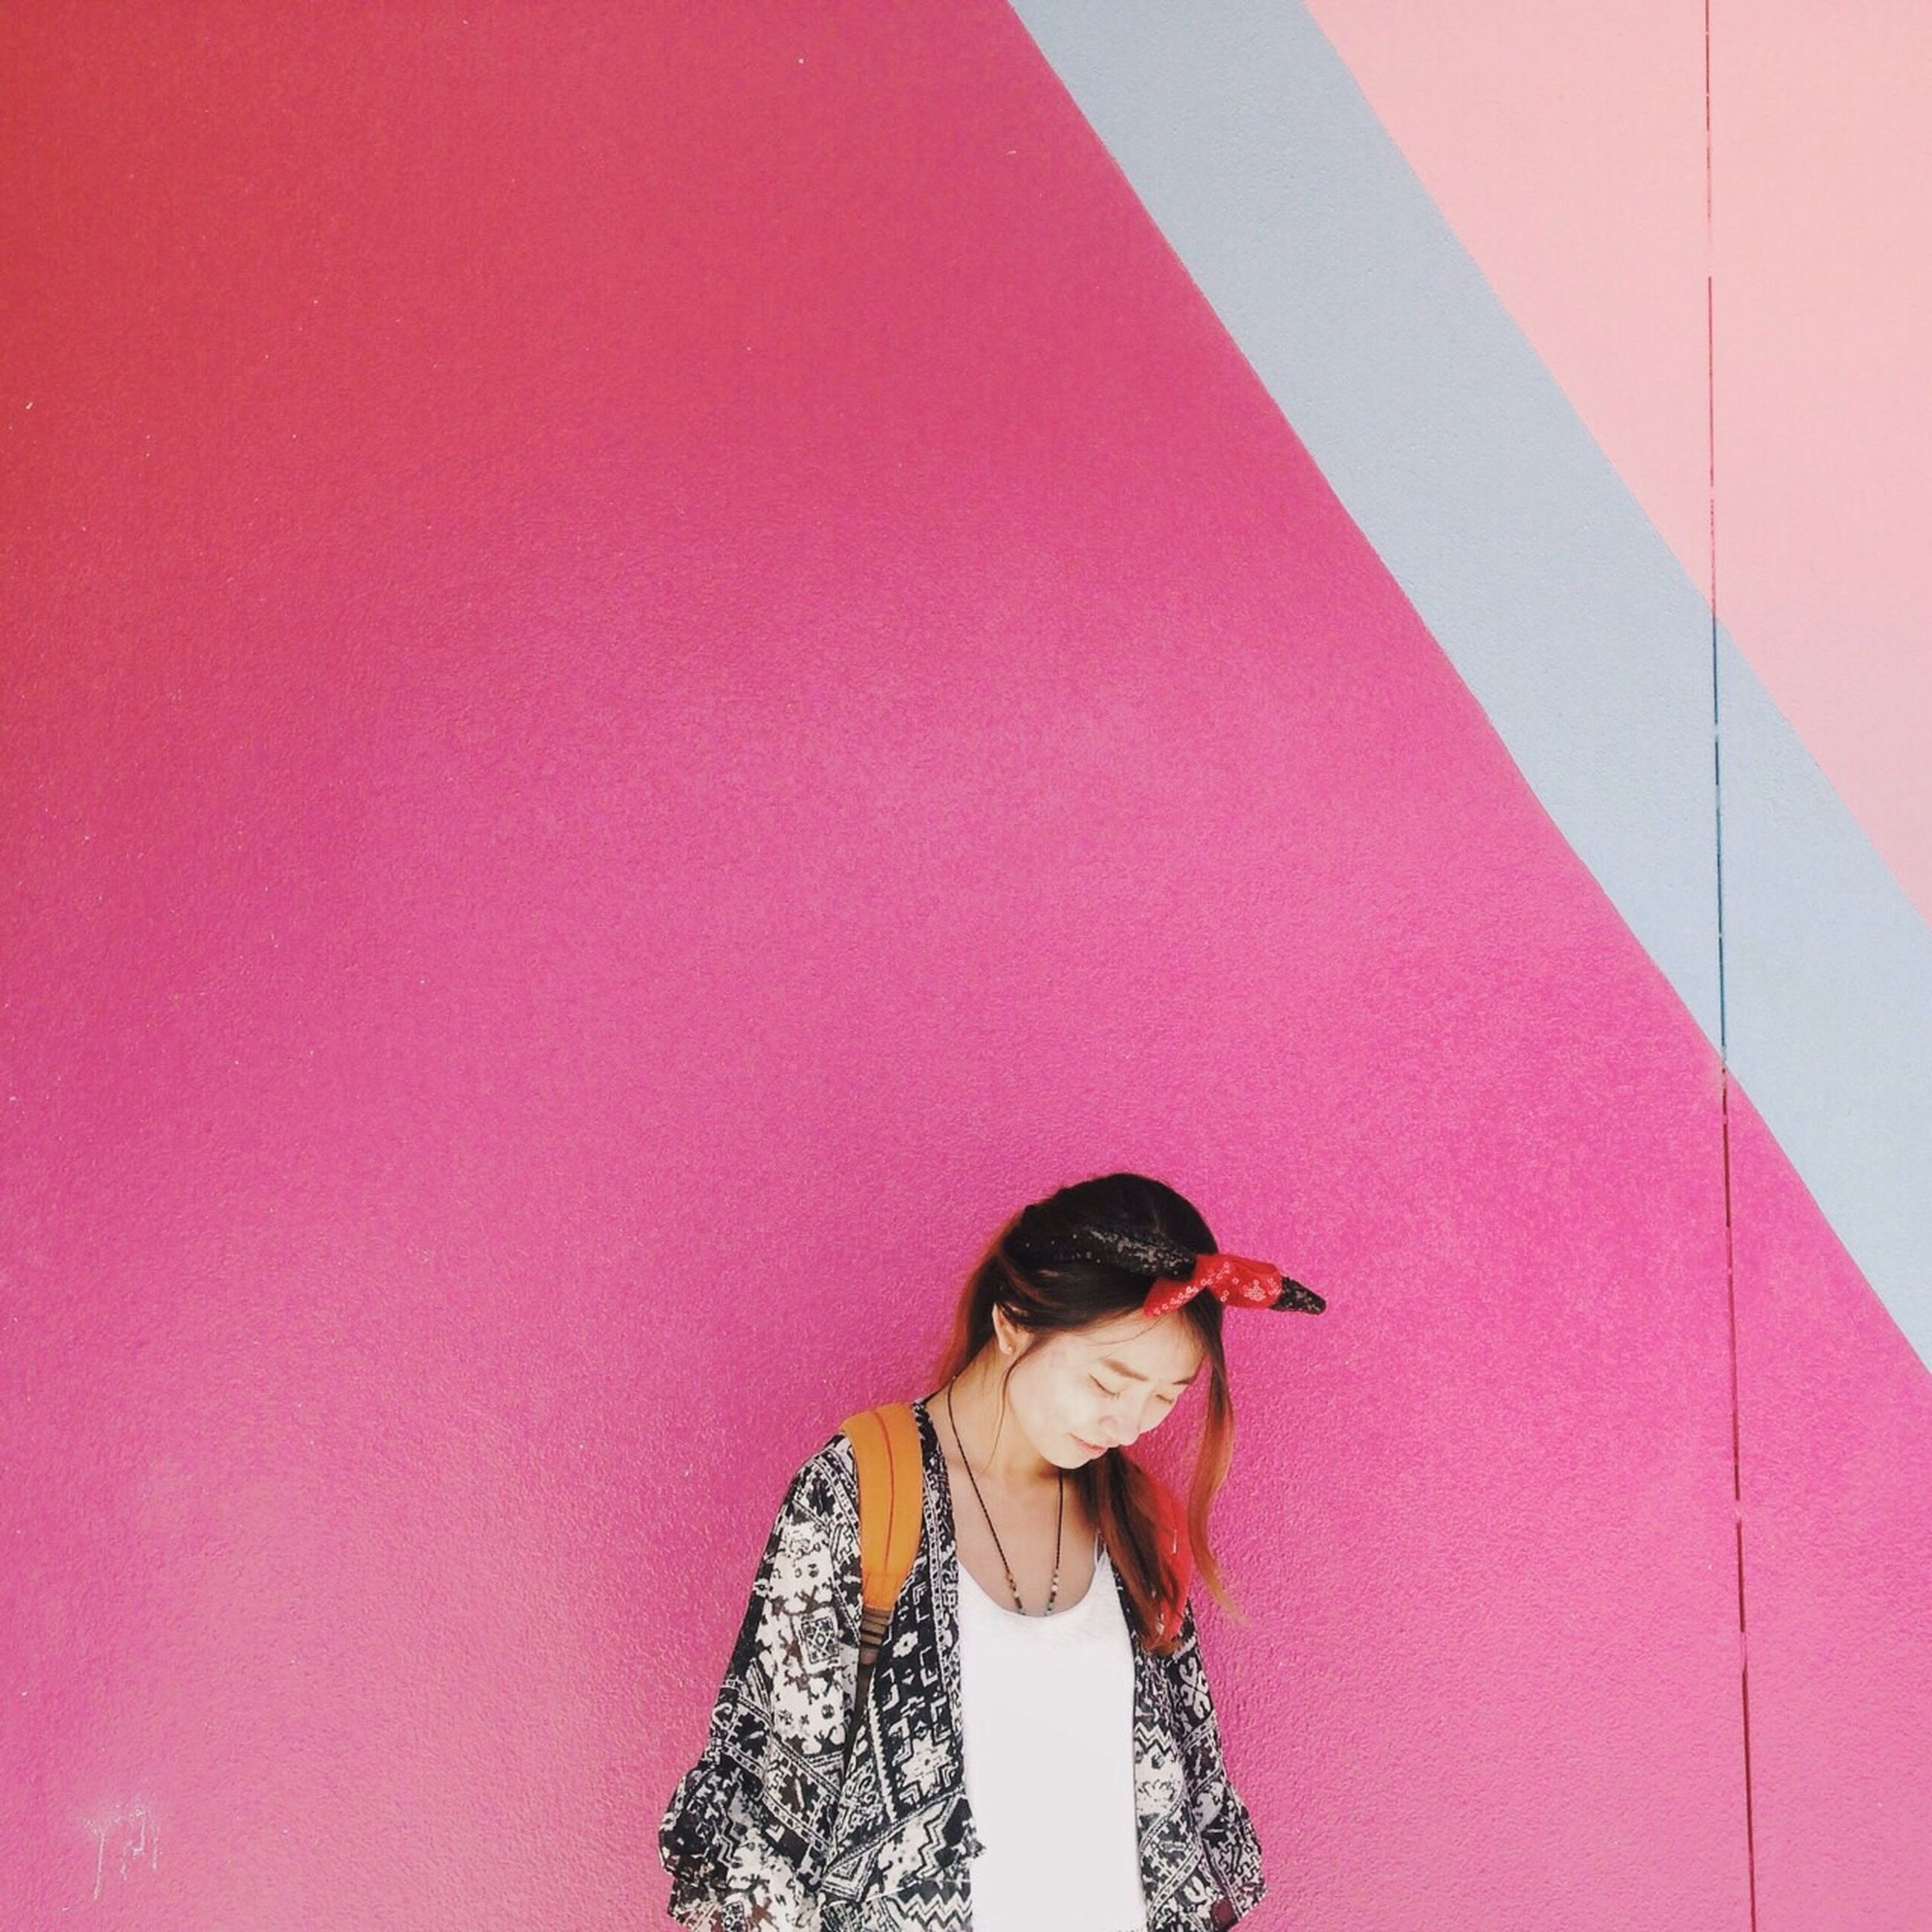 lifestyles, wall - building feature, leisure activity, young adult, casual clothing, person, copy space, standing, full length, front view, young women, looking at camera, portrait, red, wall, three quarter length, built structure, architecture